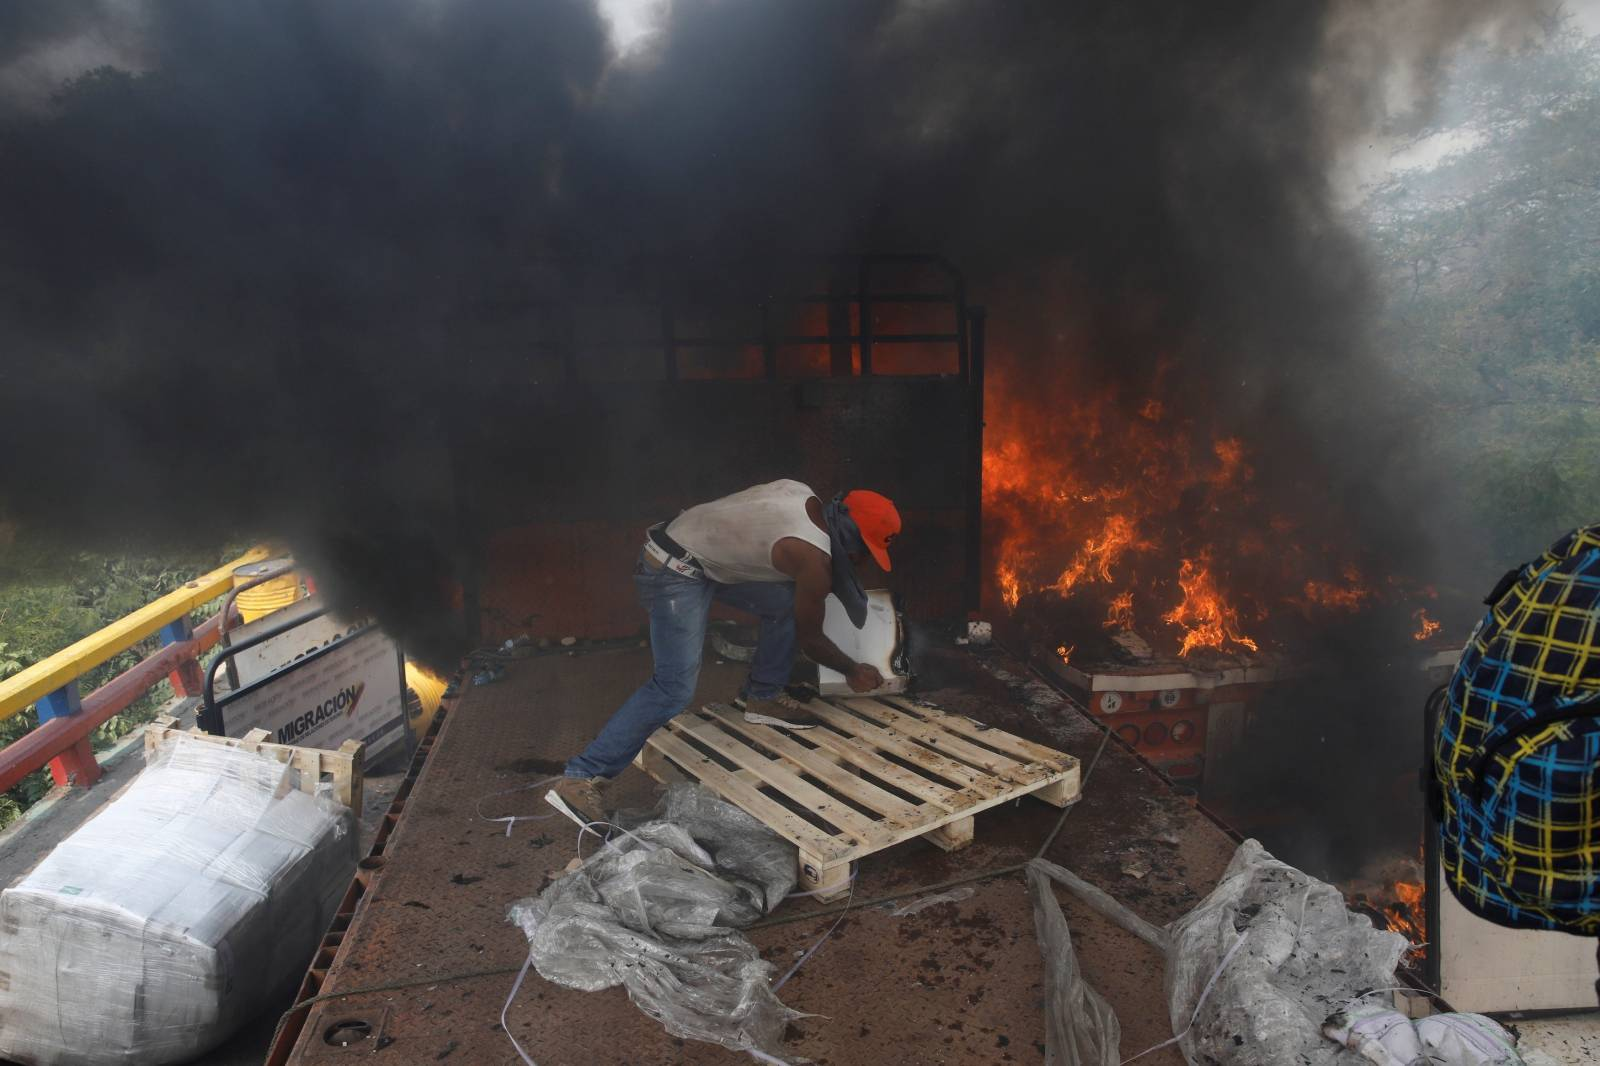 Opposition supporters unload humanitarian aid from a truck that was sent on fire in Cucuta